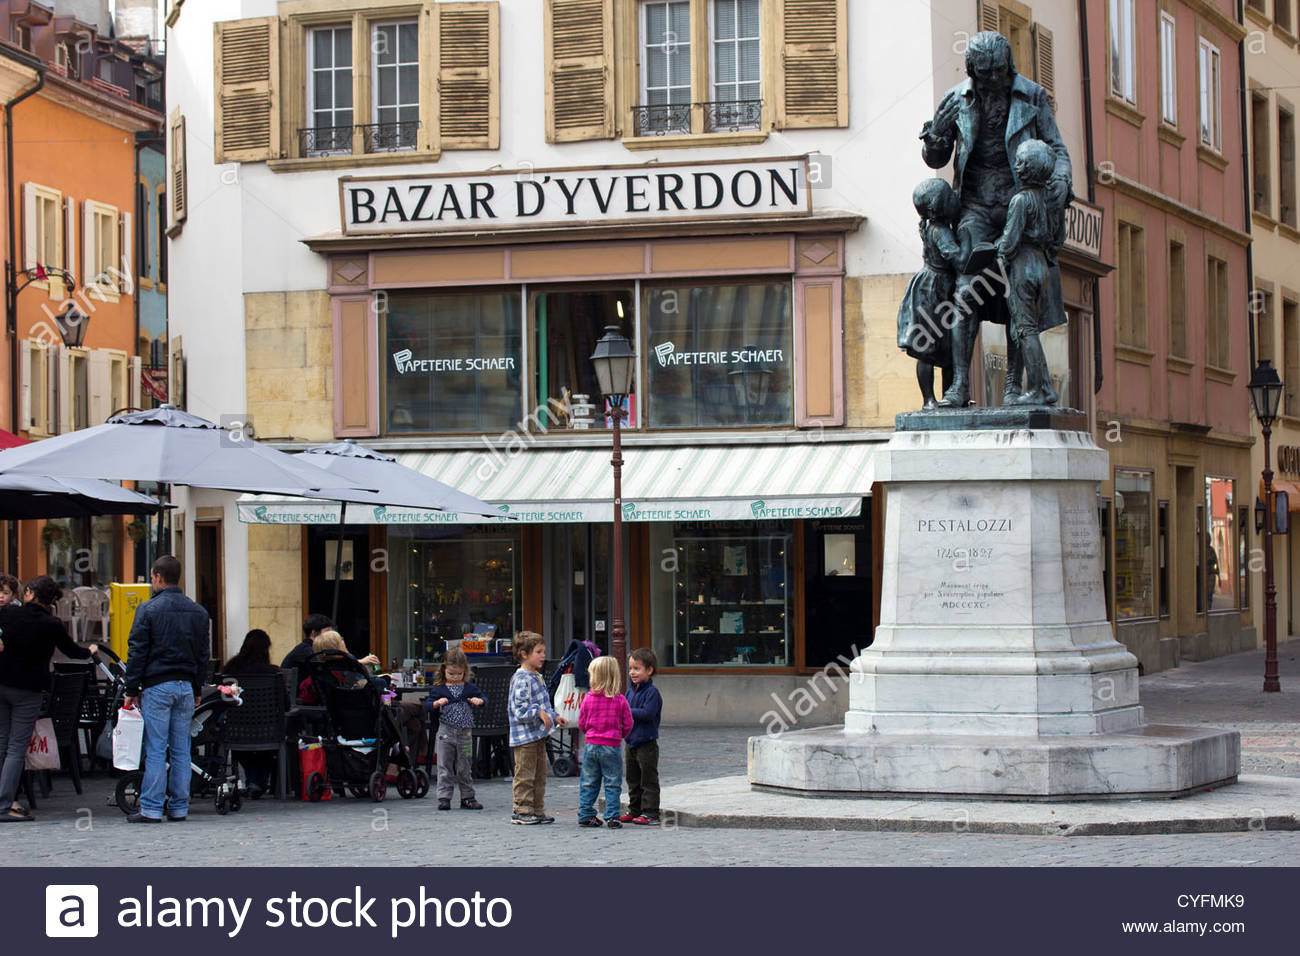 Statue of pestalozzi in yverdon les bains switzerland for Location yverdon les bains suisse